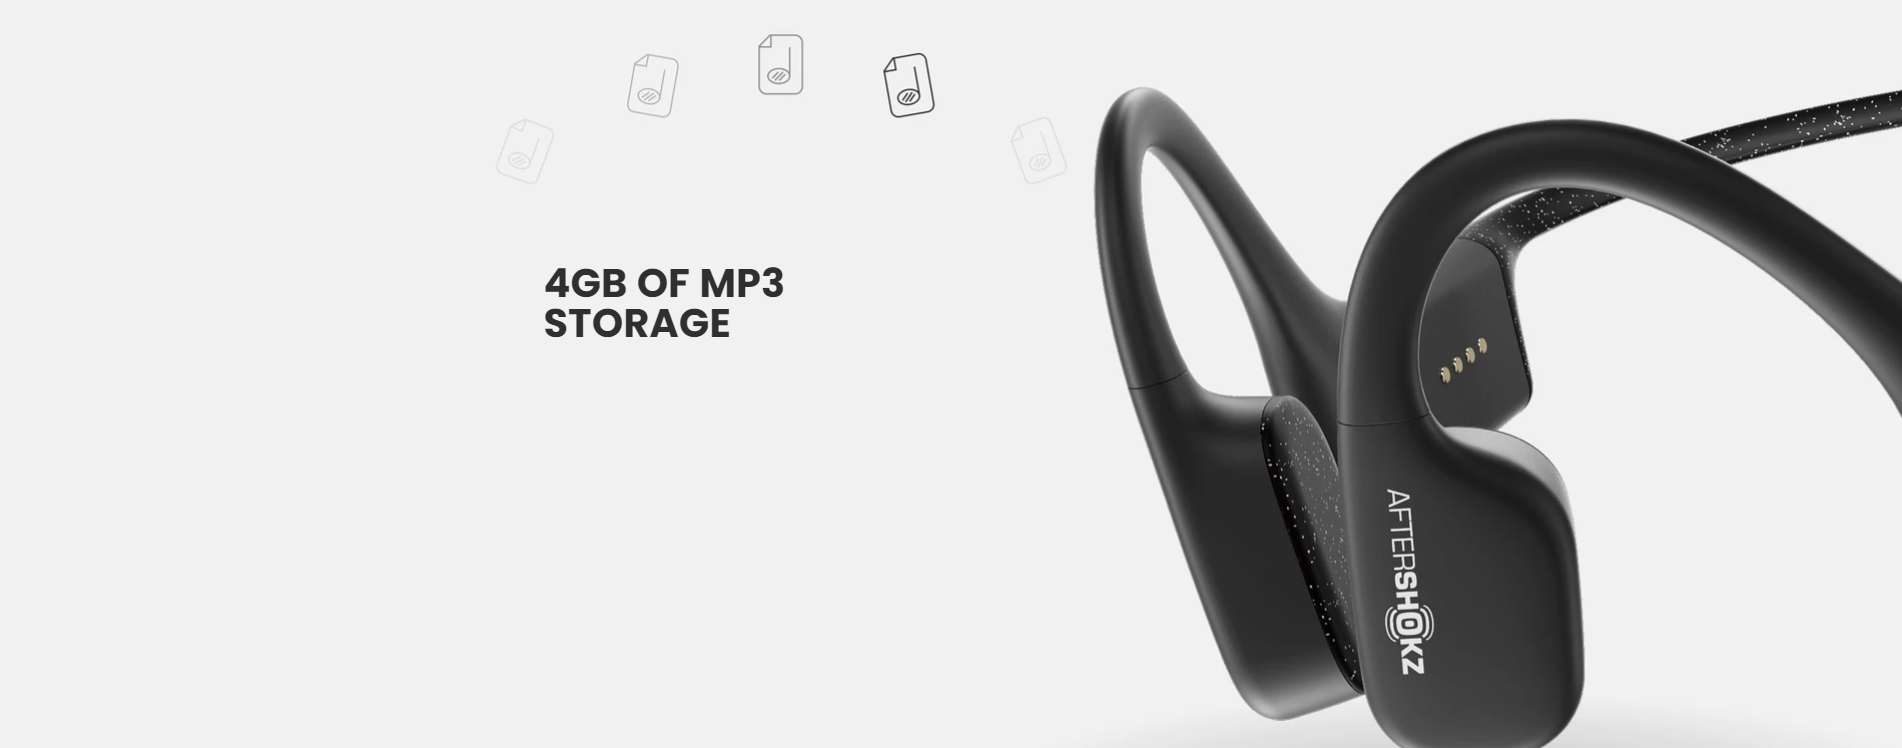 4GB OF MP3 STORAGE - Powered for any playlist. Built-in storage allows for a library of up to 1,200 songs ready to play at the touch of a button.  NOT BLUETOOTH COMPATIBLE